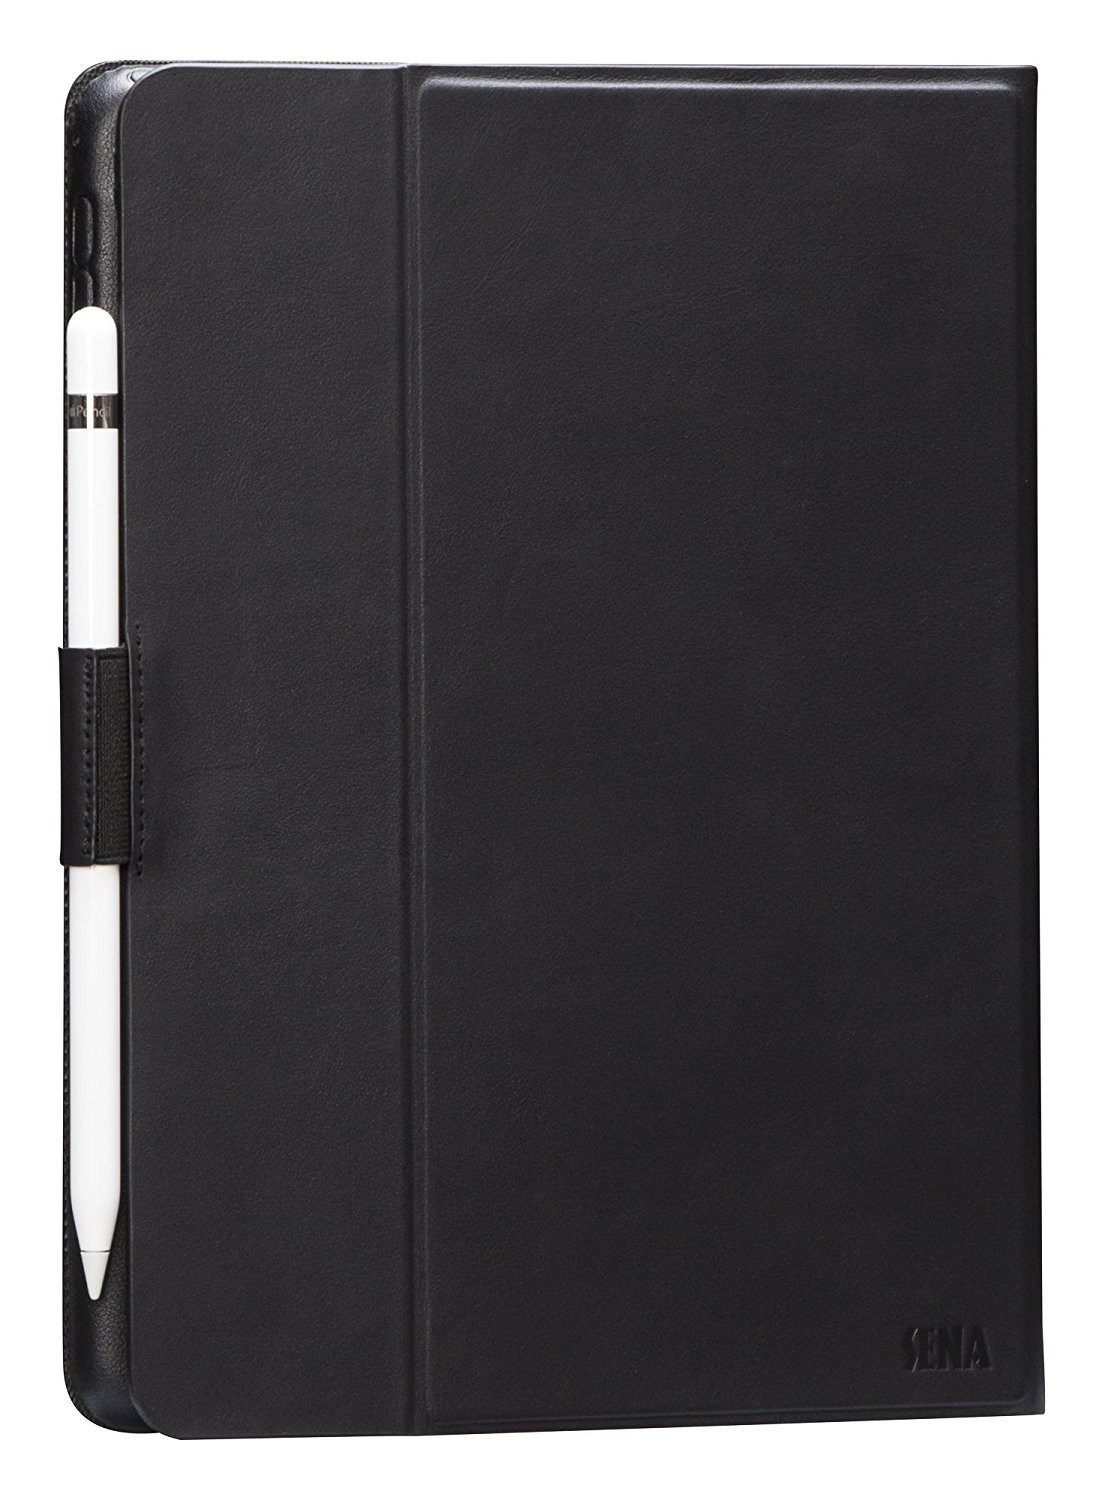 Sena Vettra 360 for iPad Pro 9.7 inch – Black, SHD265ALUS